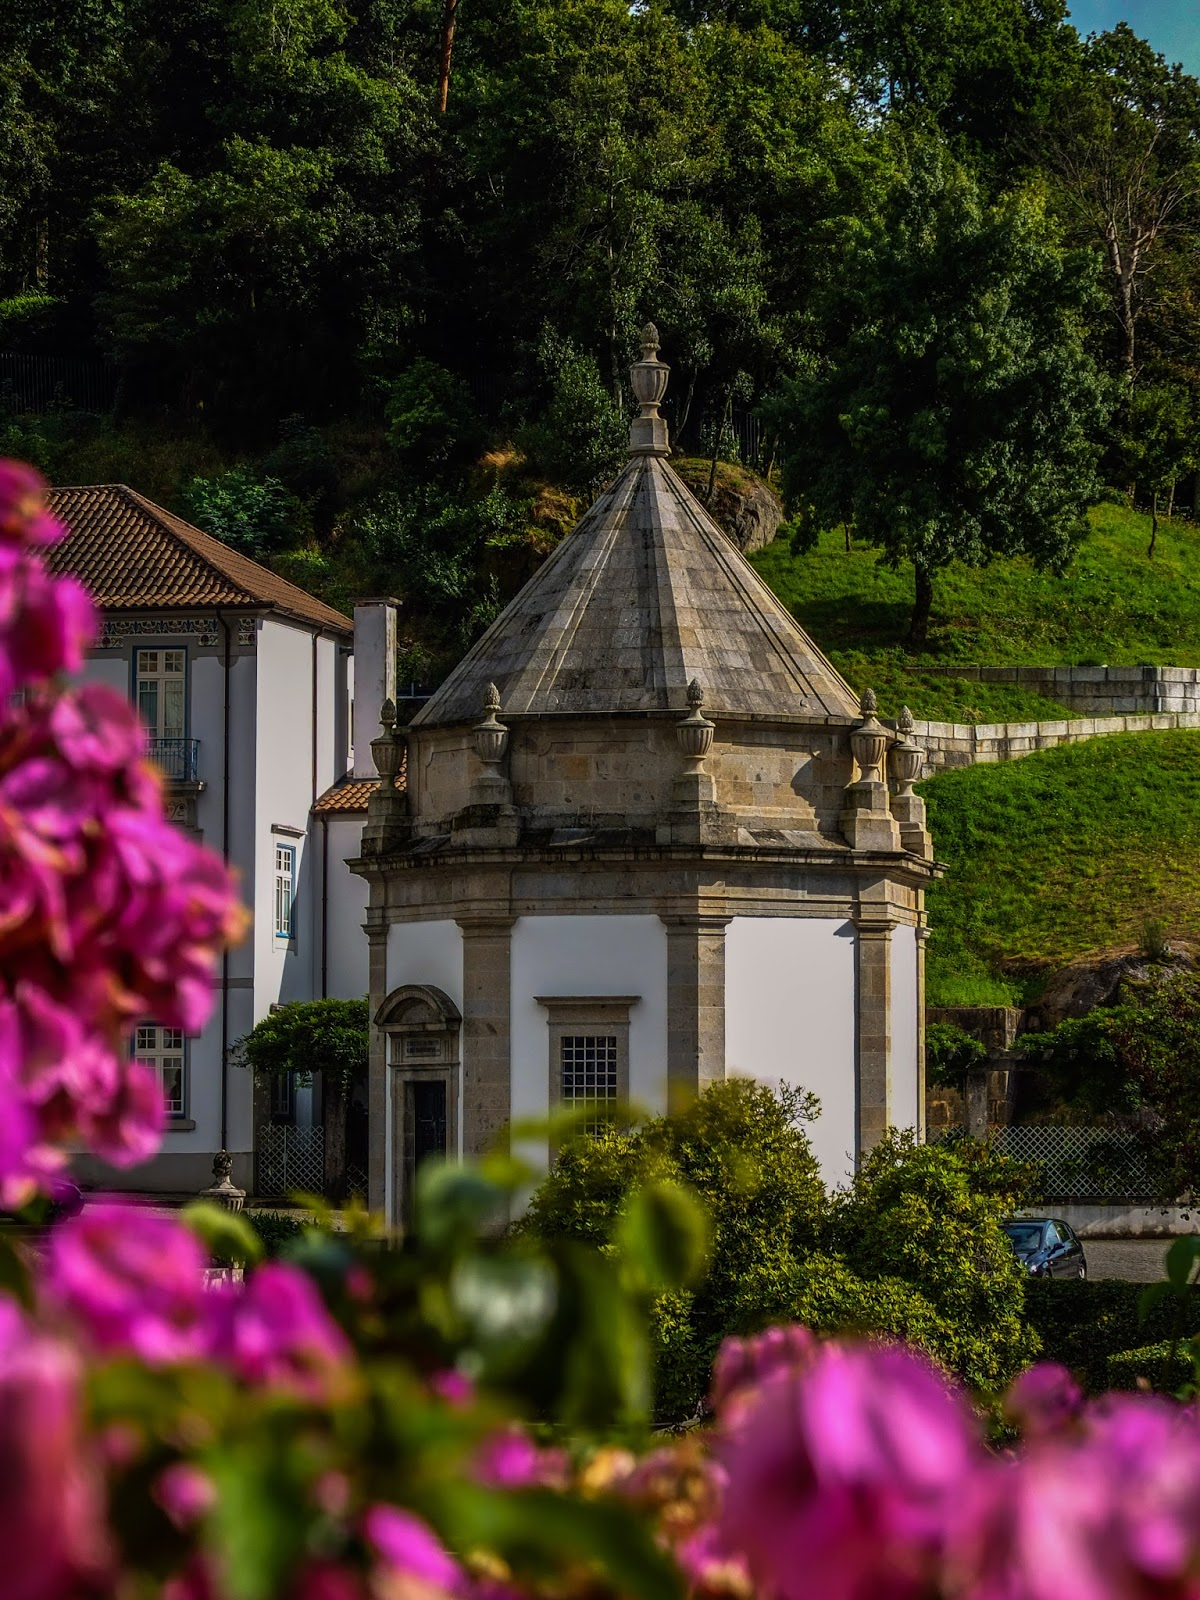 A chapel in the Sanctuary of Bom Jesus in Braga with pink flowers surrounding the frame.